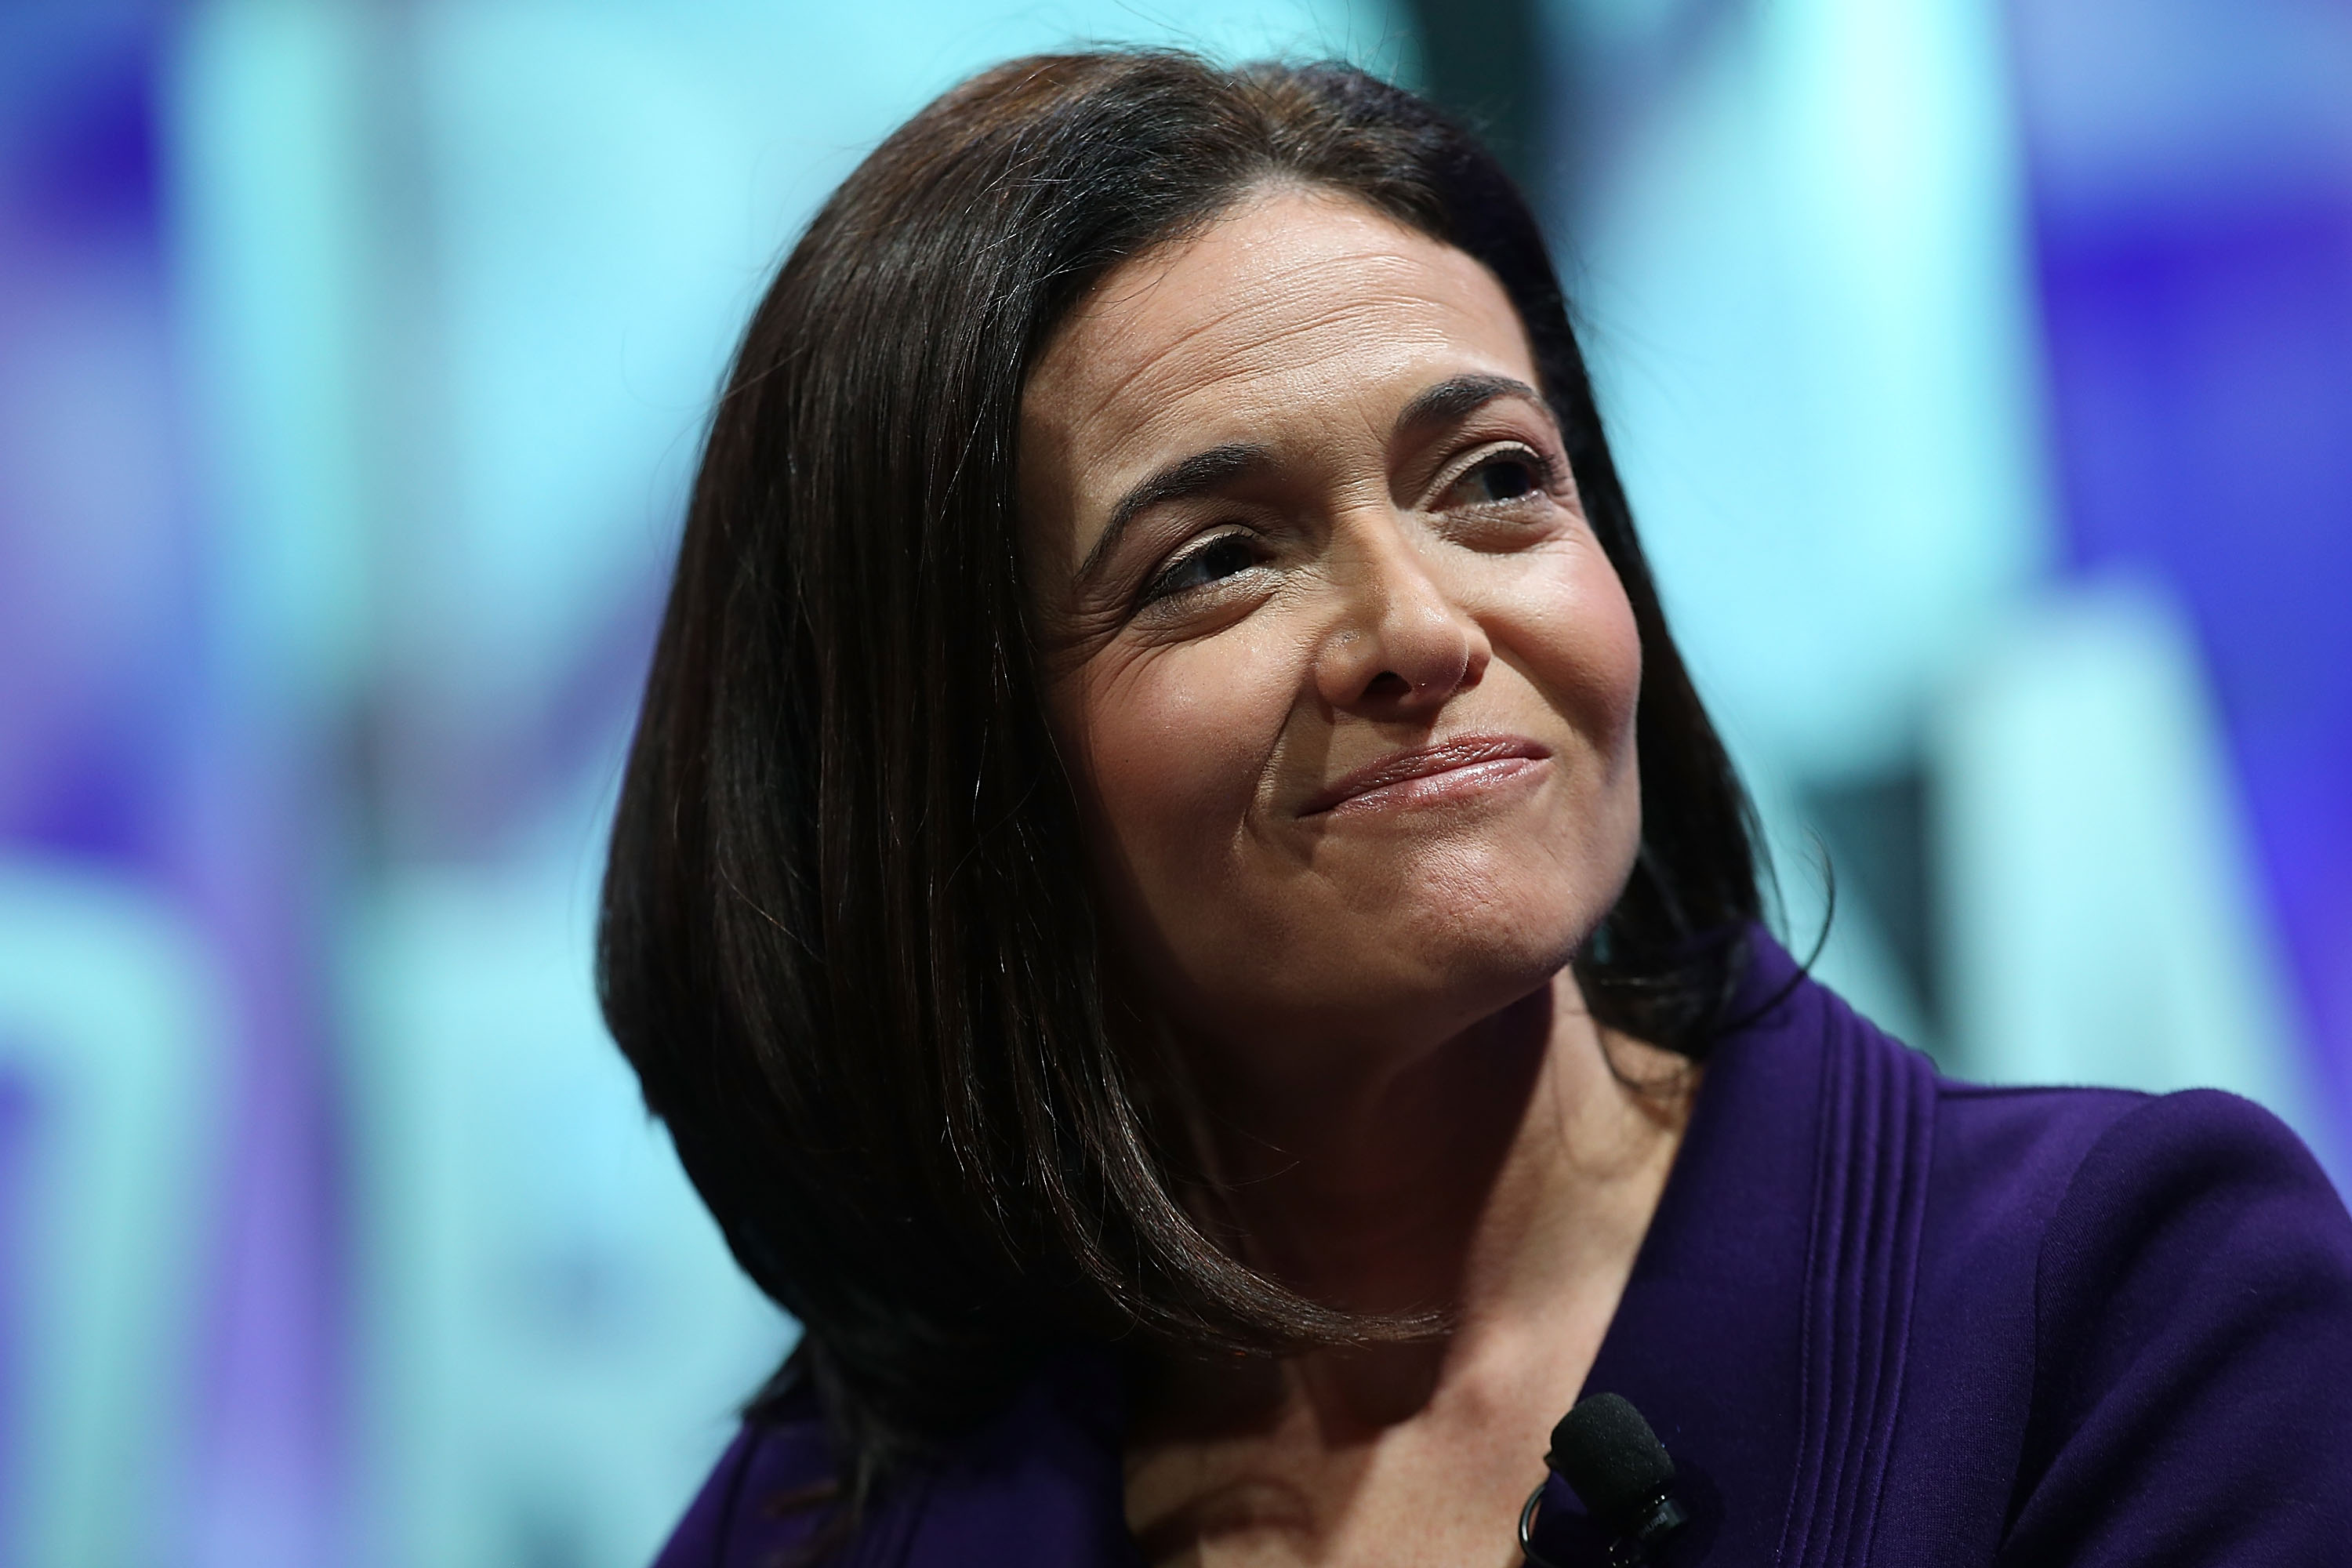 Facebook COO Sheryl Sandberg speaks during the Fortune Global Forum on November 3, 2015 in San Francisco, California. (Justin Sullivan--Getty Images)